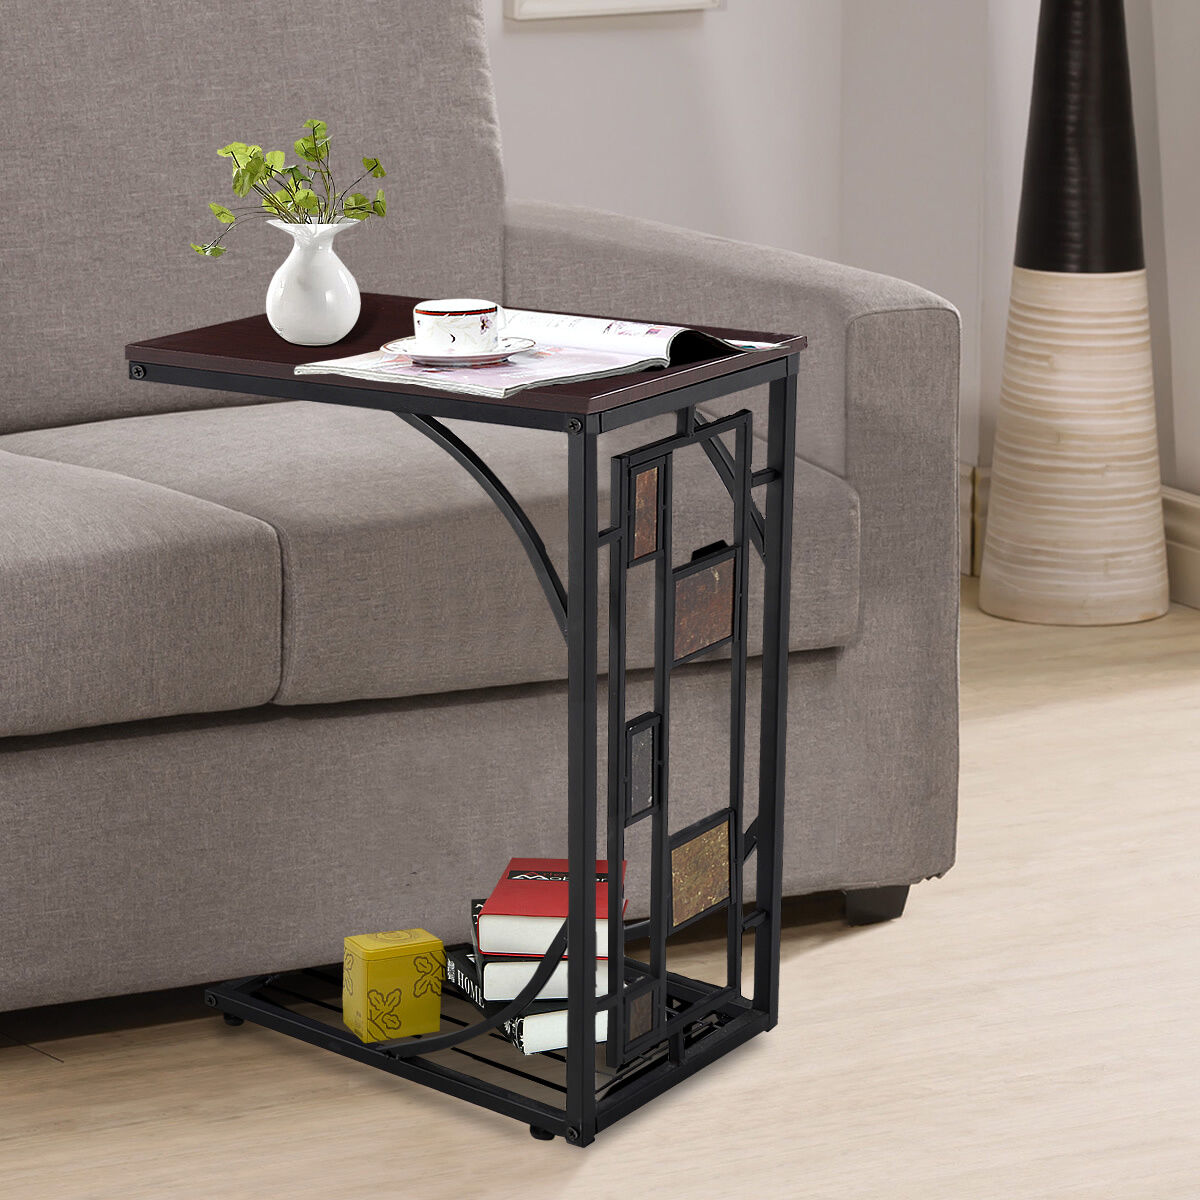 title | Couch Side Table